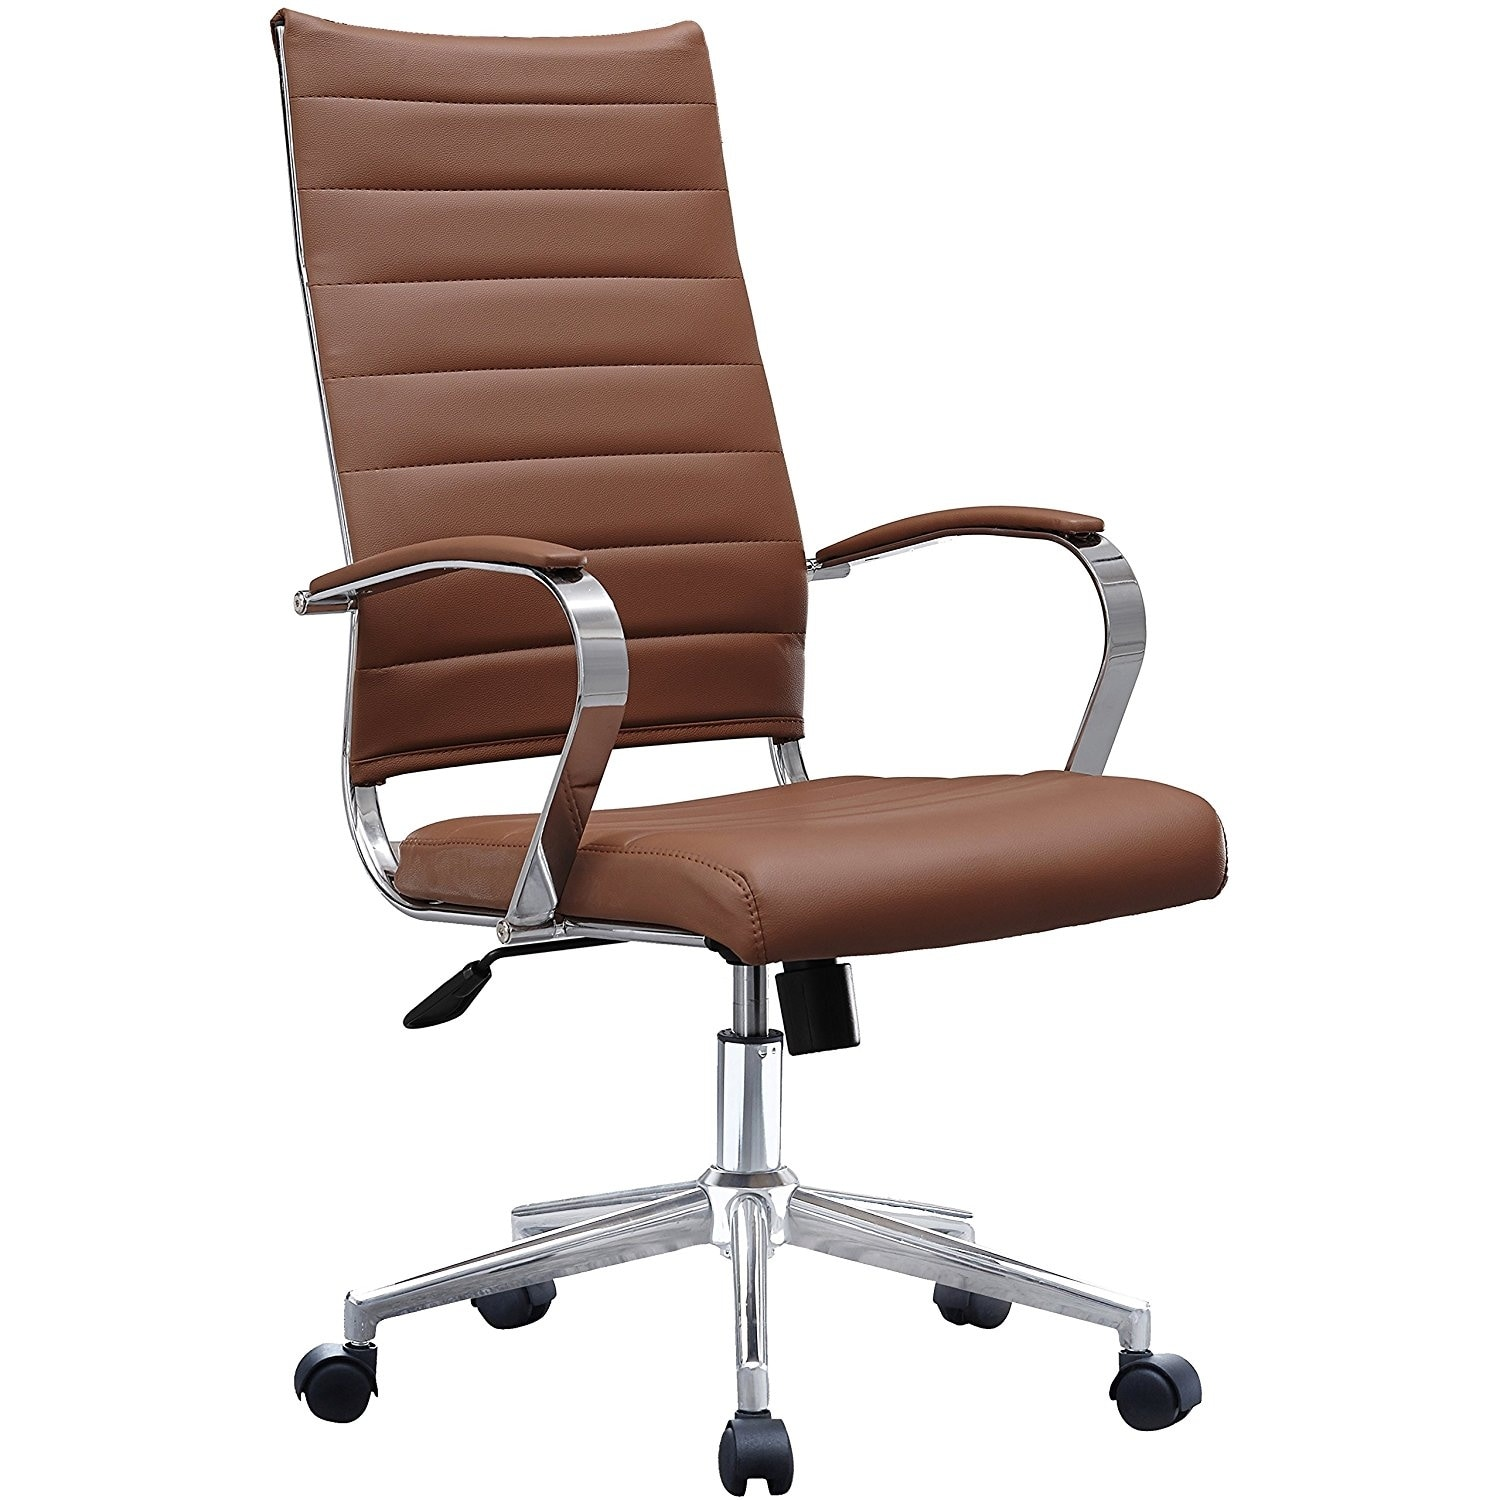 shop 2xhome modern brown high back office chair ribbed pu leather